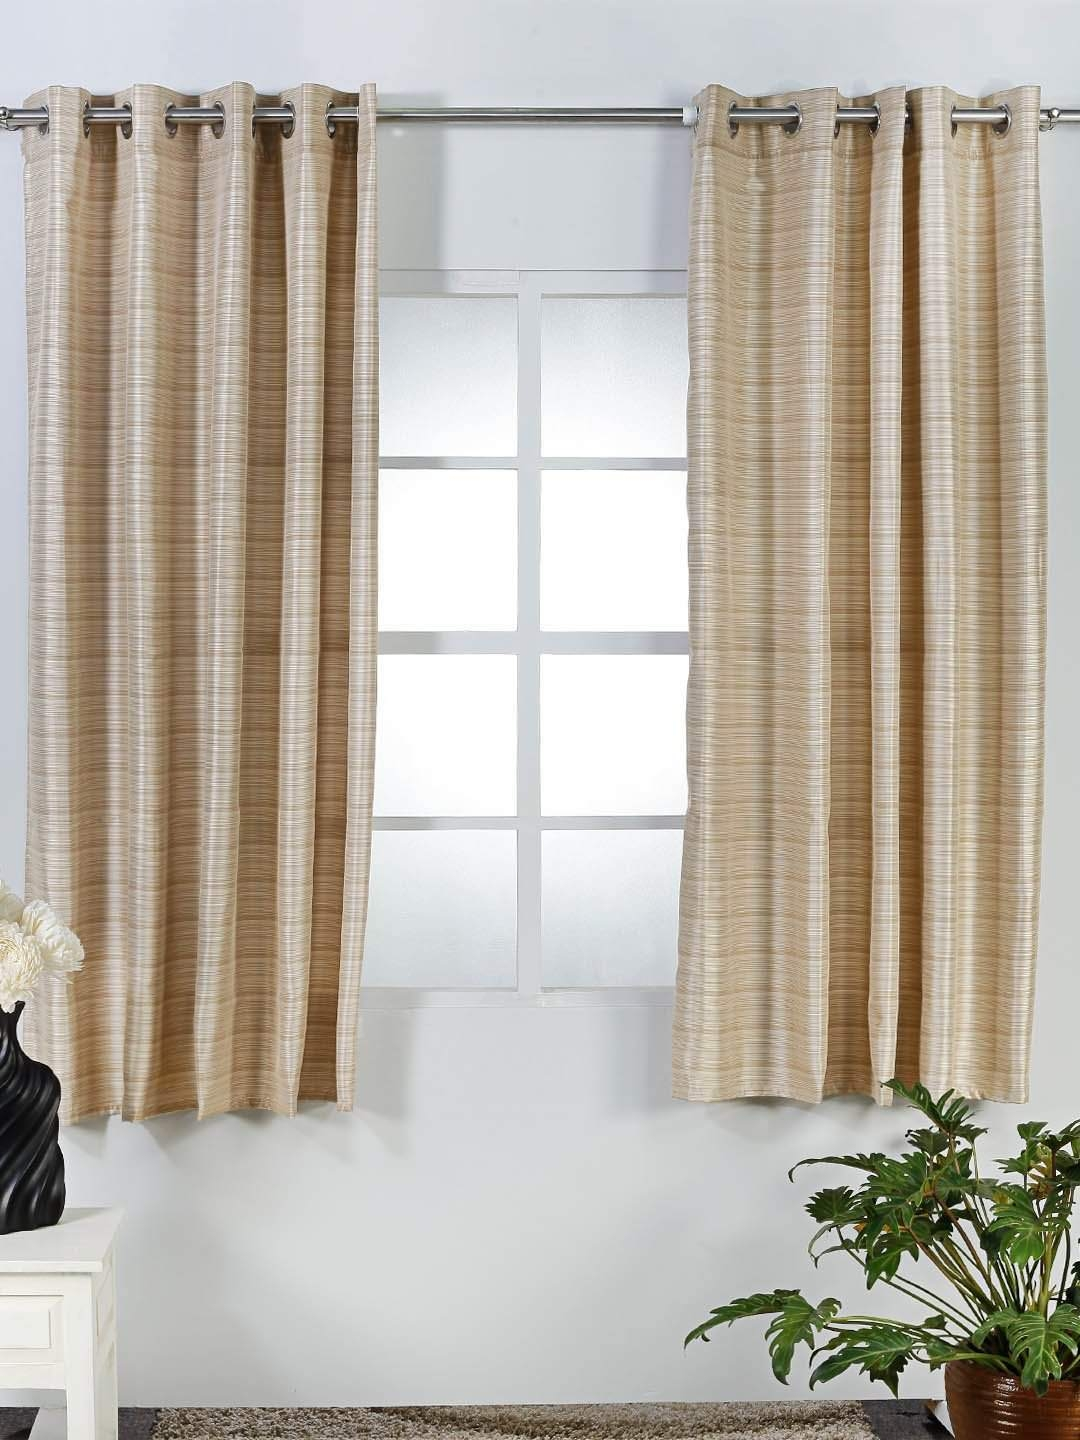 Ready Made Pencil Pleat Curtains Uk Best Window Design With For Curtains Windows (Image 23 of 25)